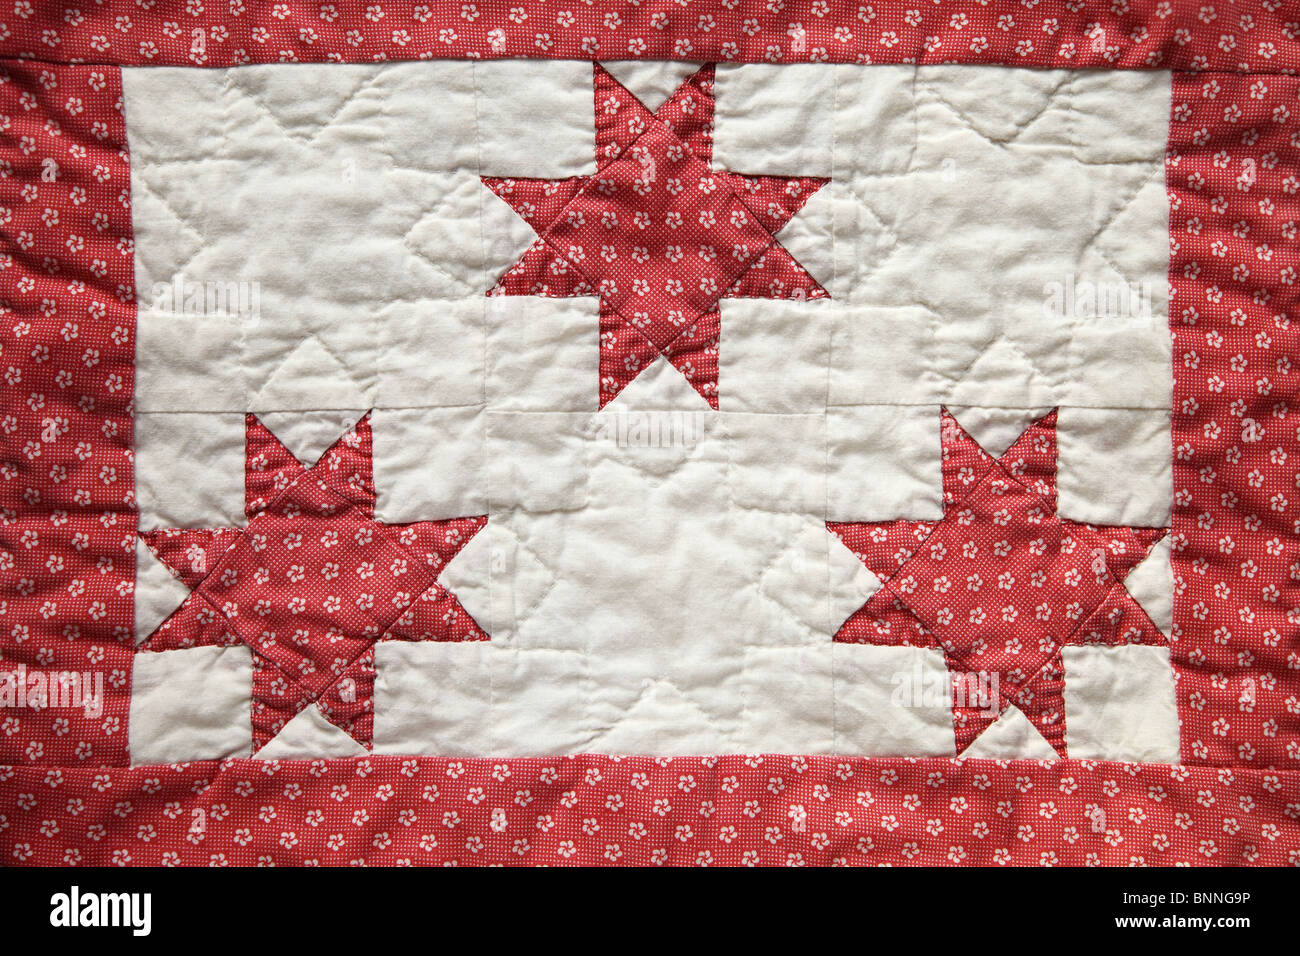 three eight-point quilted stars with a border - Stock Image